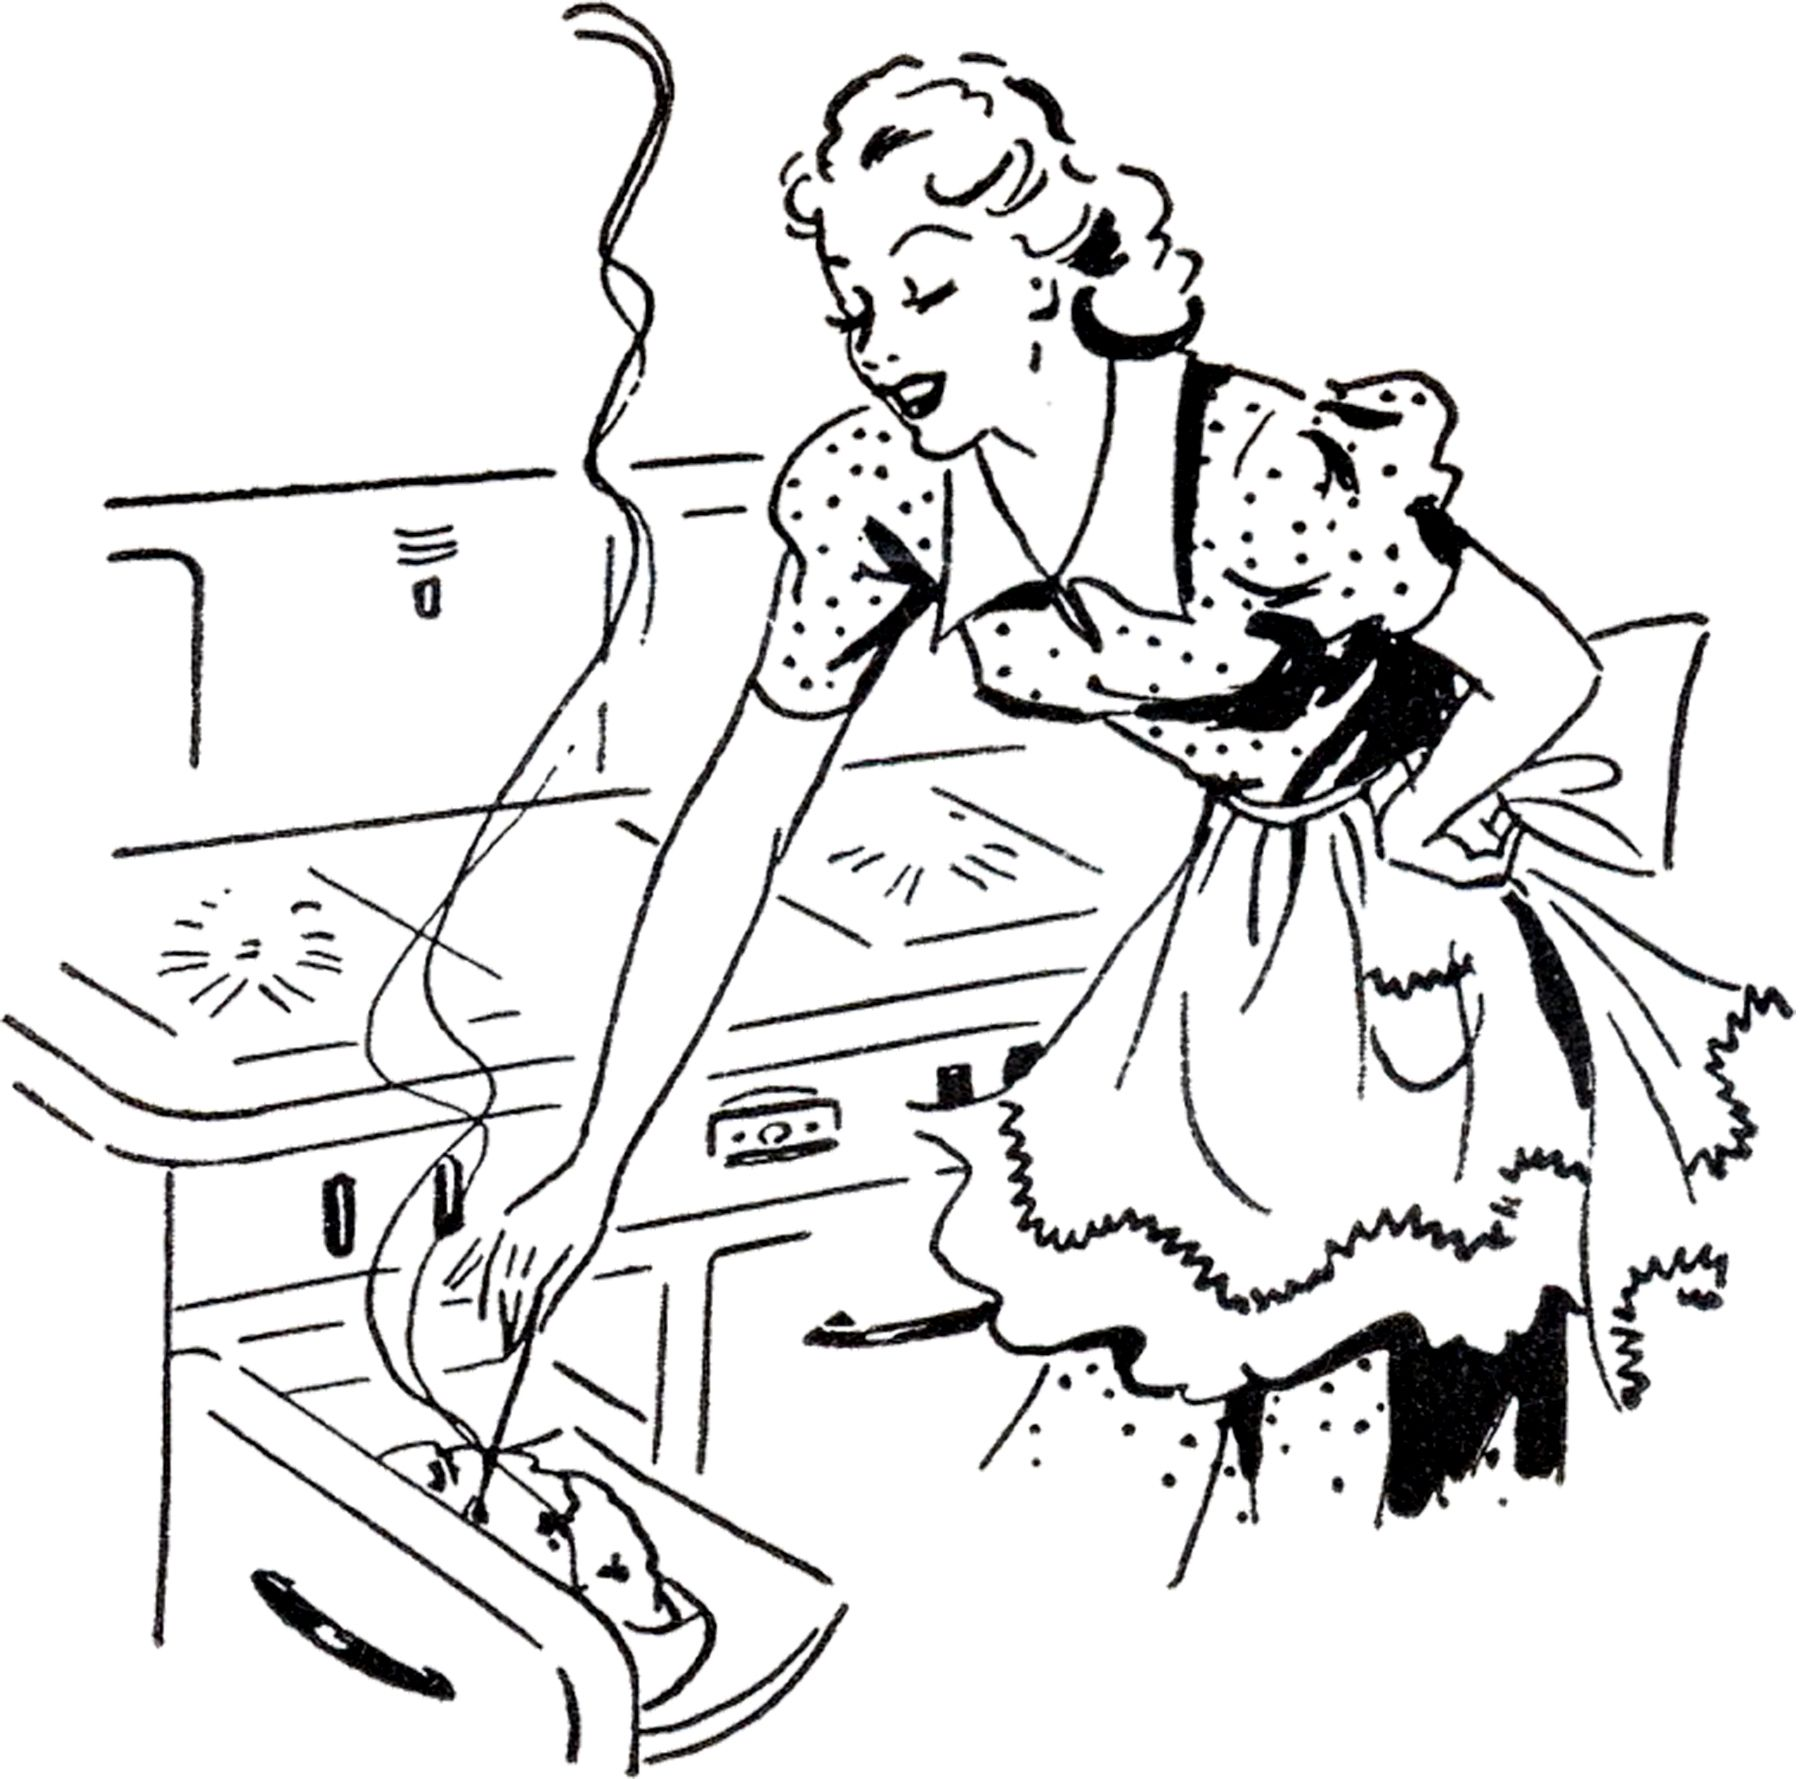 Mom and daughter baking clipart black and white png transparent Adorable Retro Cooking Mom Image! | Embroidery Designs ... png transparent